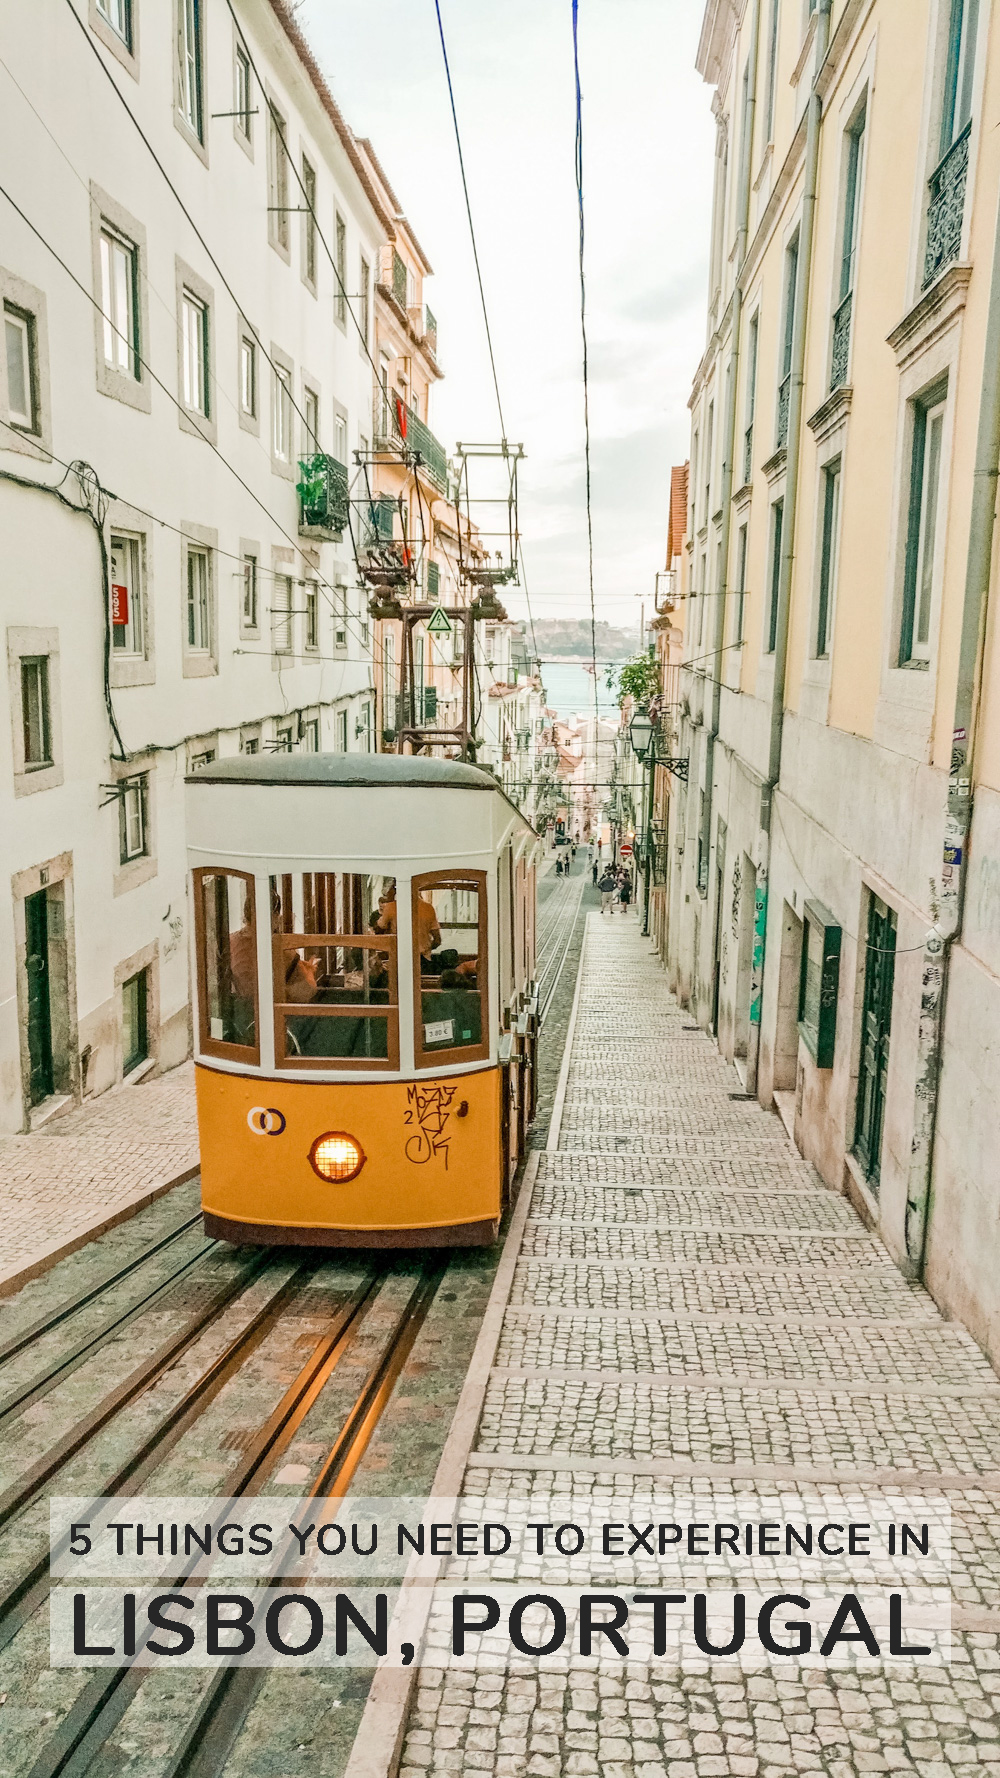 5 things you need to experience in Lisbon, Portugal   Aliz's Wonderland